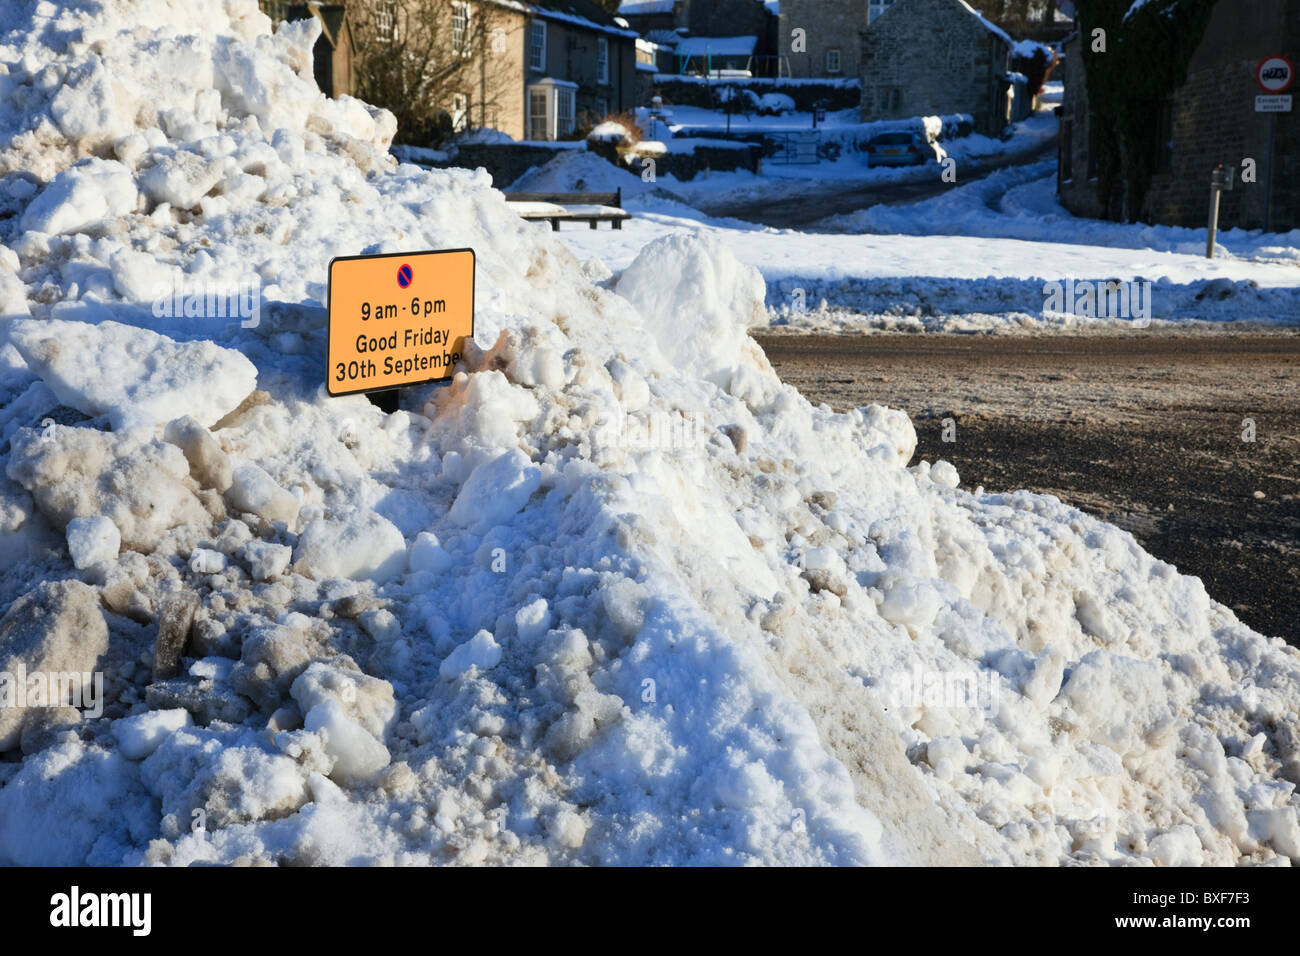 England, UK. Deep snow piled up by roadside restricted parking sign during severe winter weather causing traffic - Stock Image